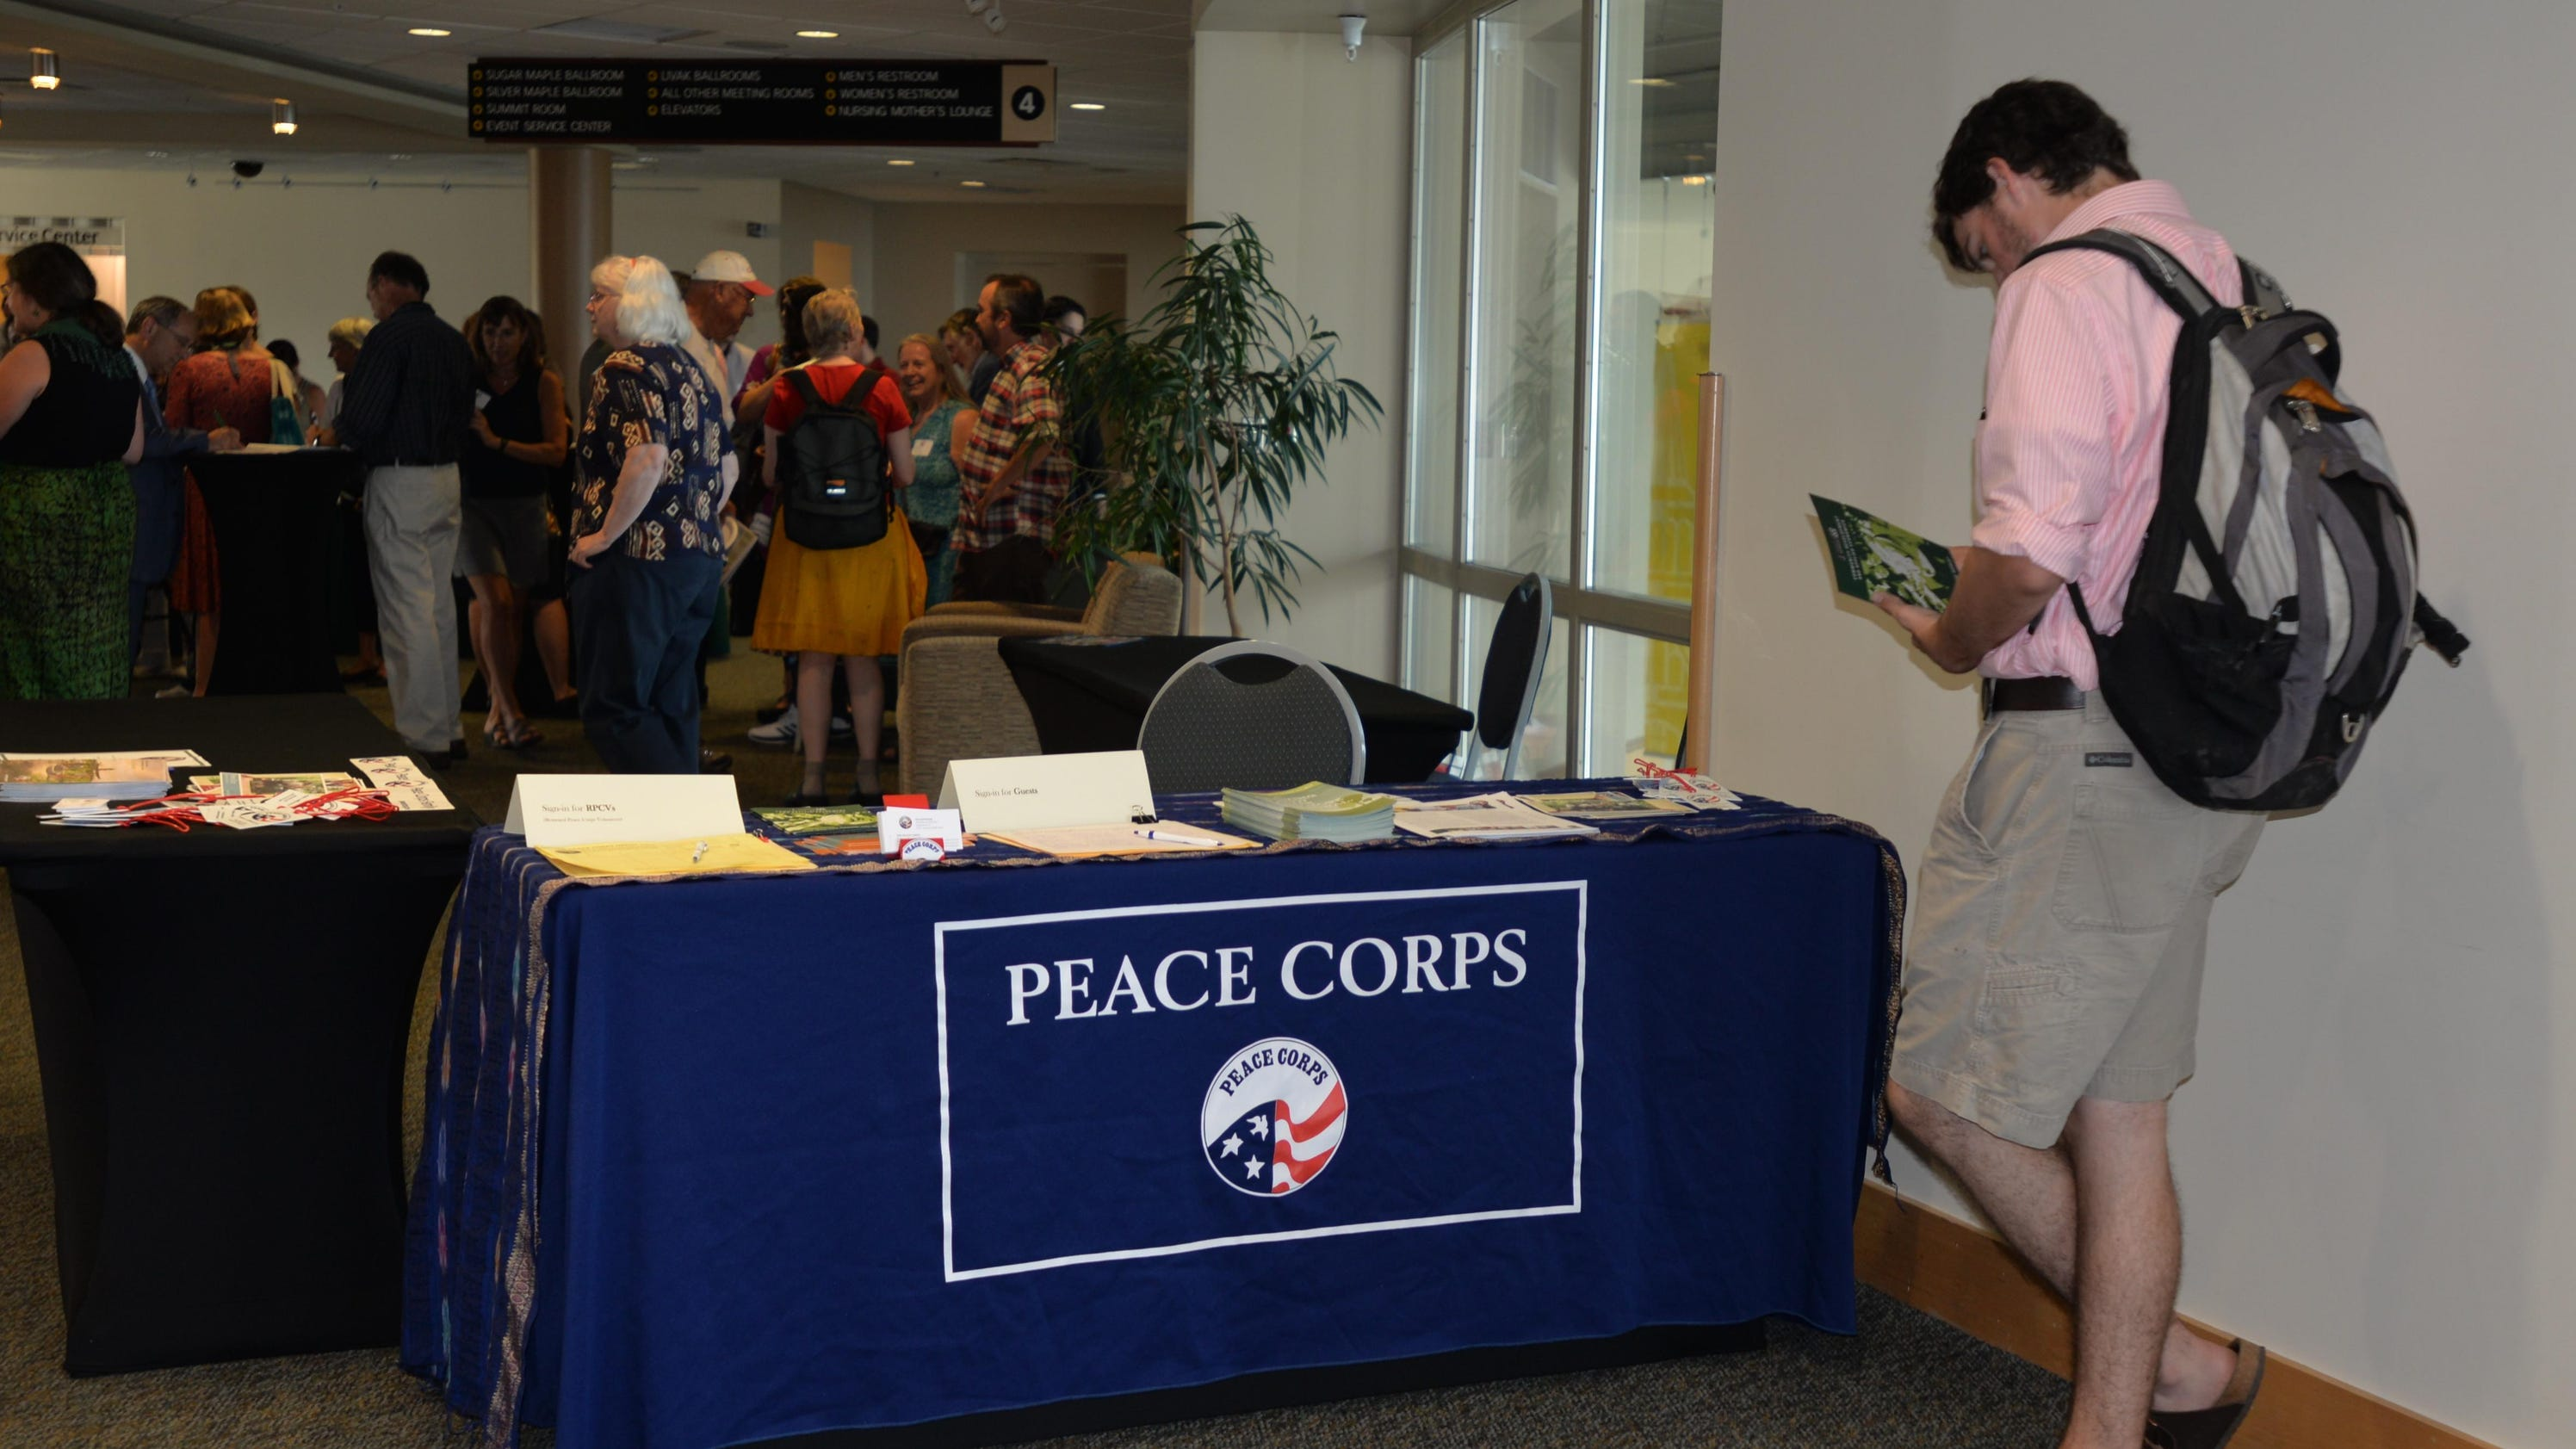 vermont leads nation in peace corps again